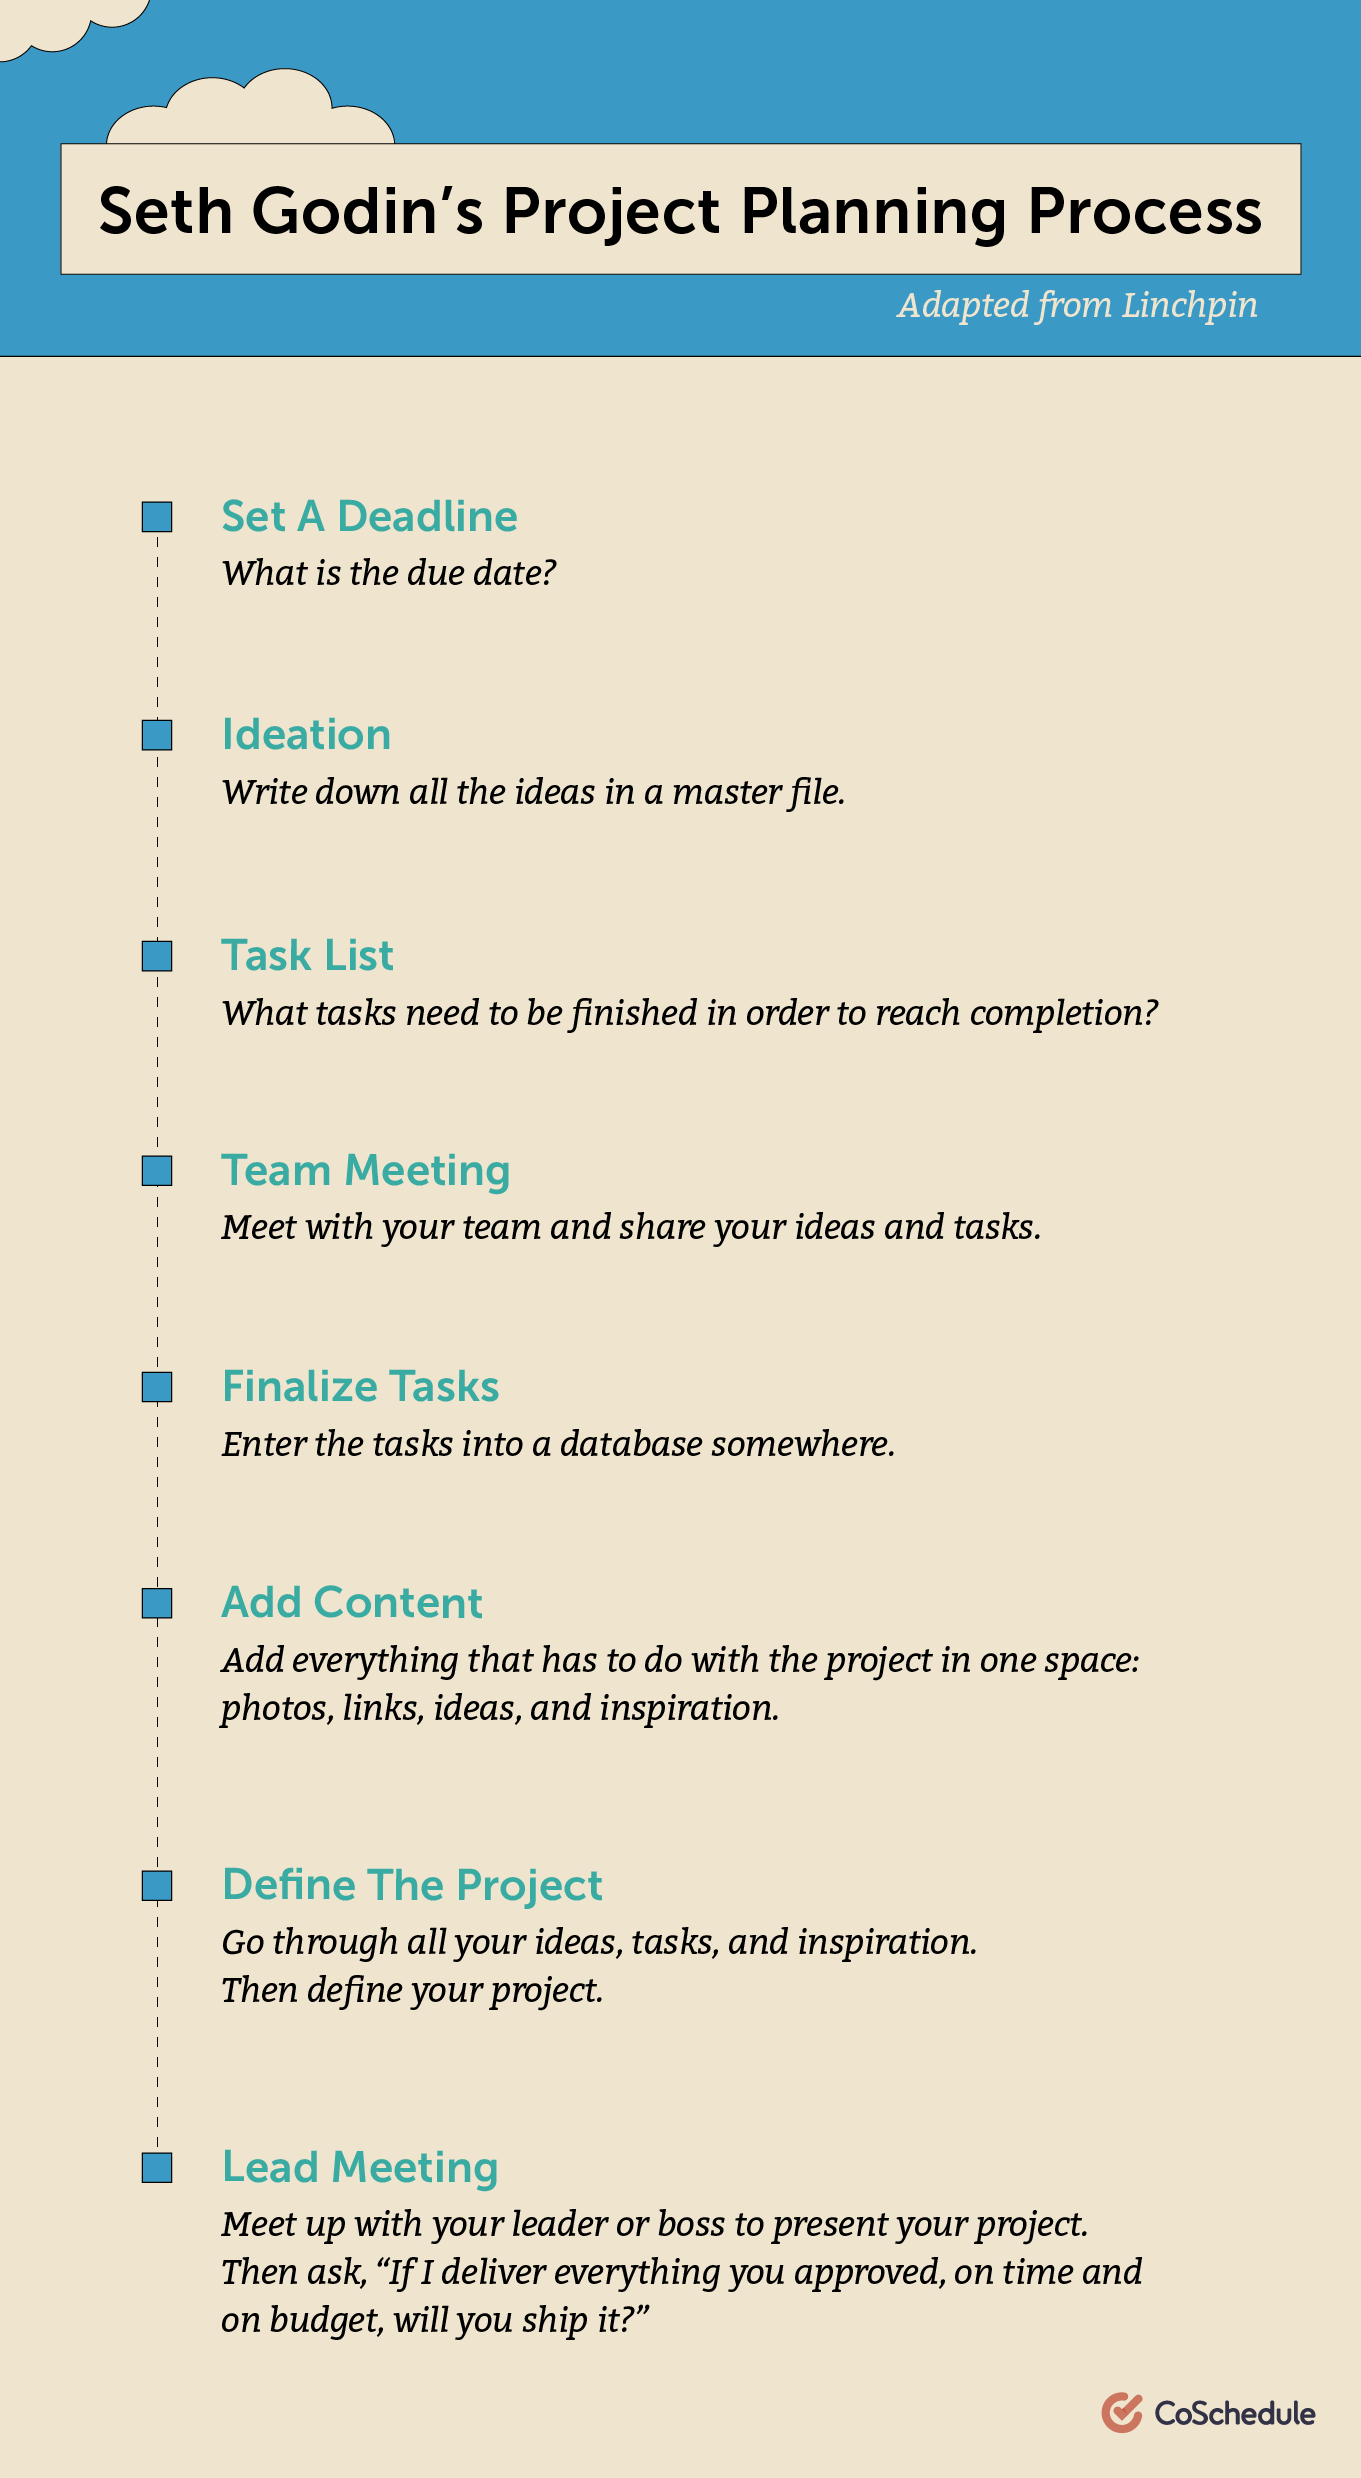 Seth Godin's project planning process adapted from Linchpin